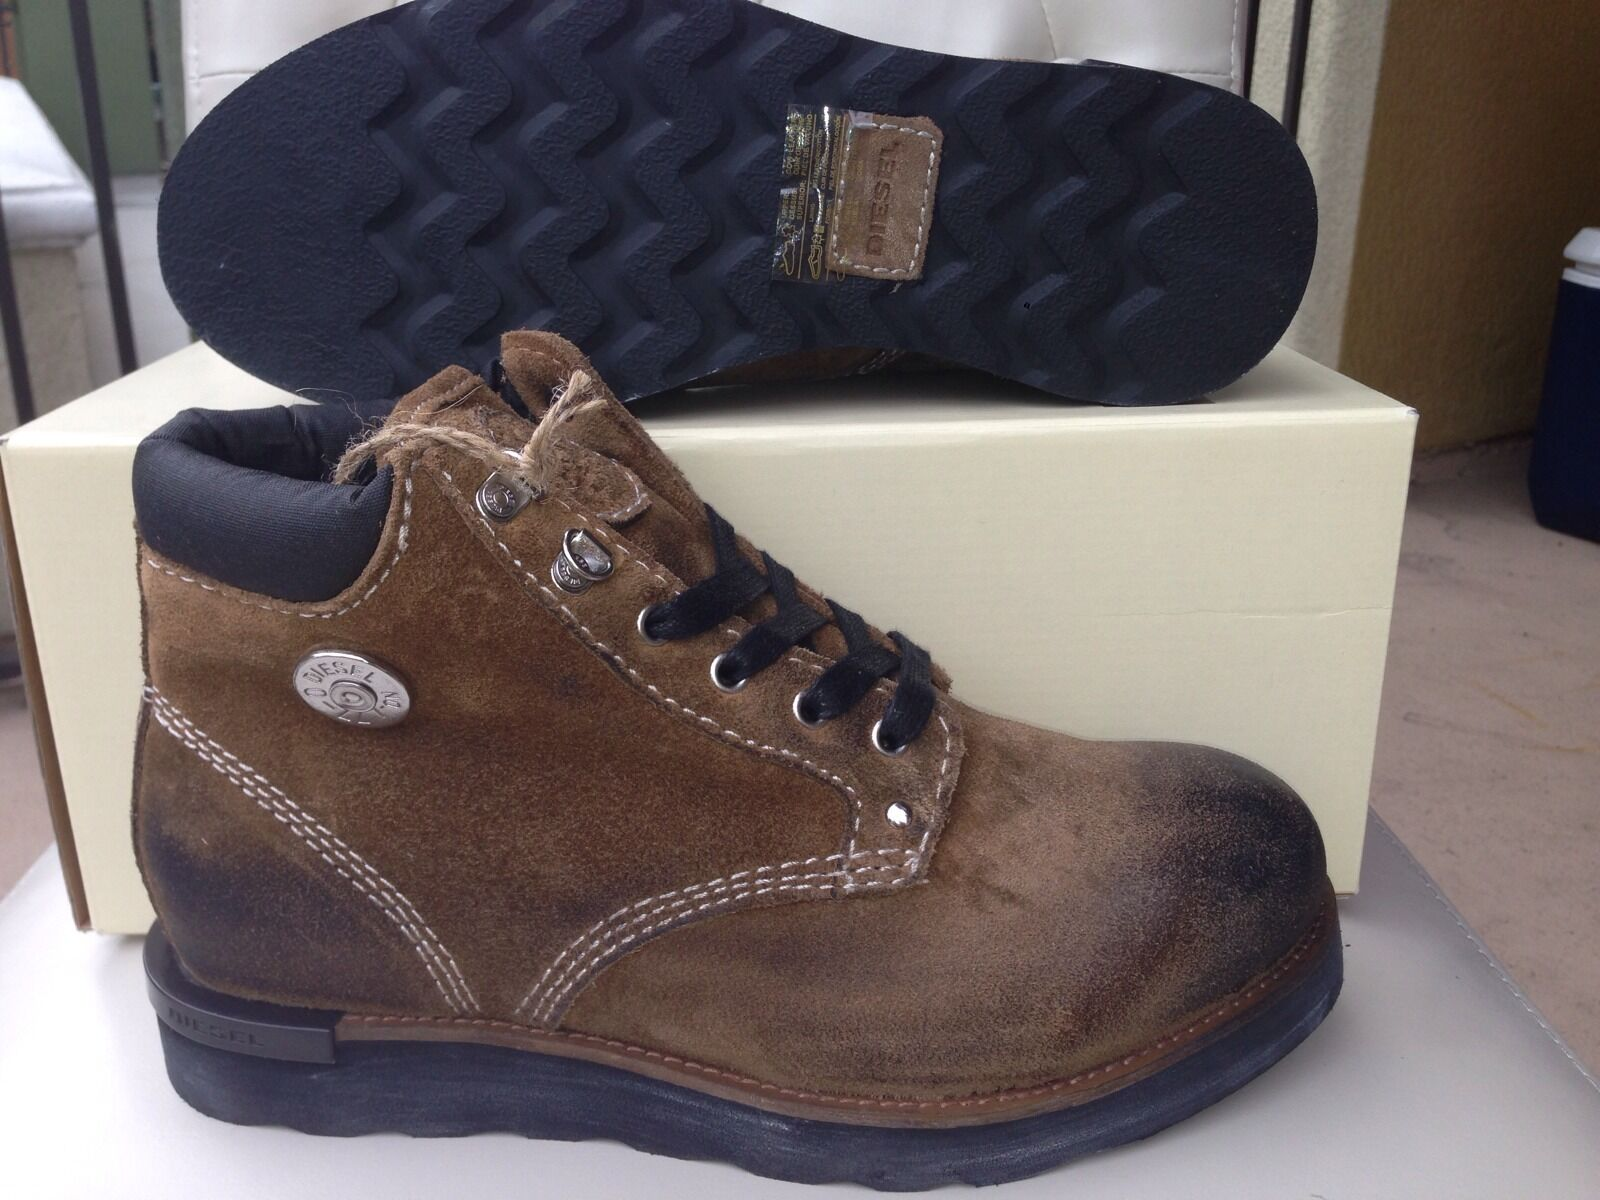 Diesel D.I.Y. Cub Y00239 Brown Leather Burnished Toe Men's Boots 225 Size 7.5